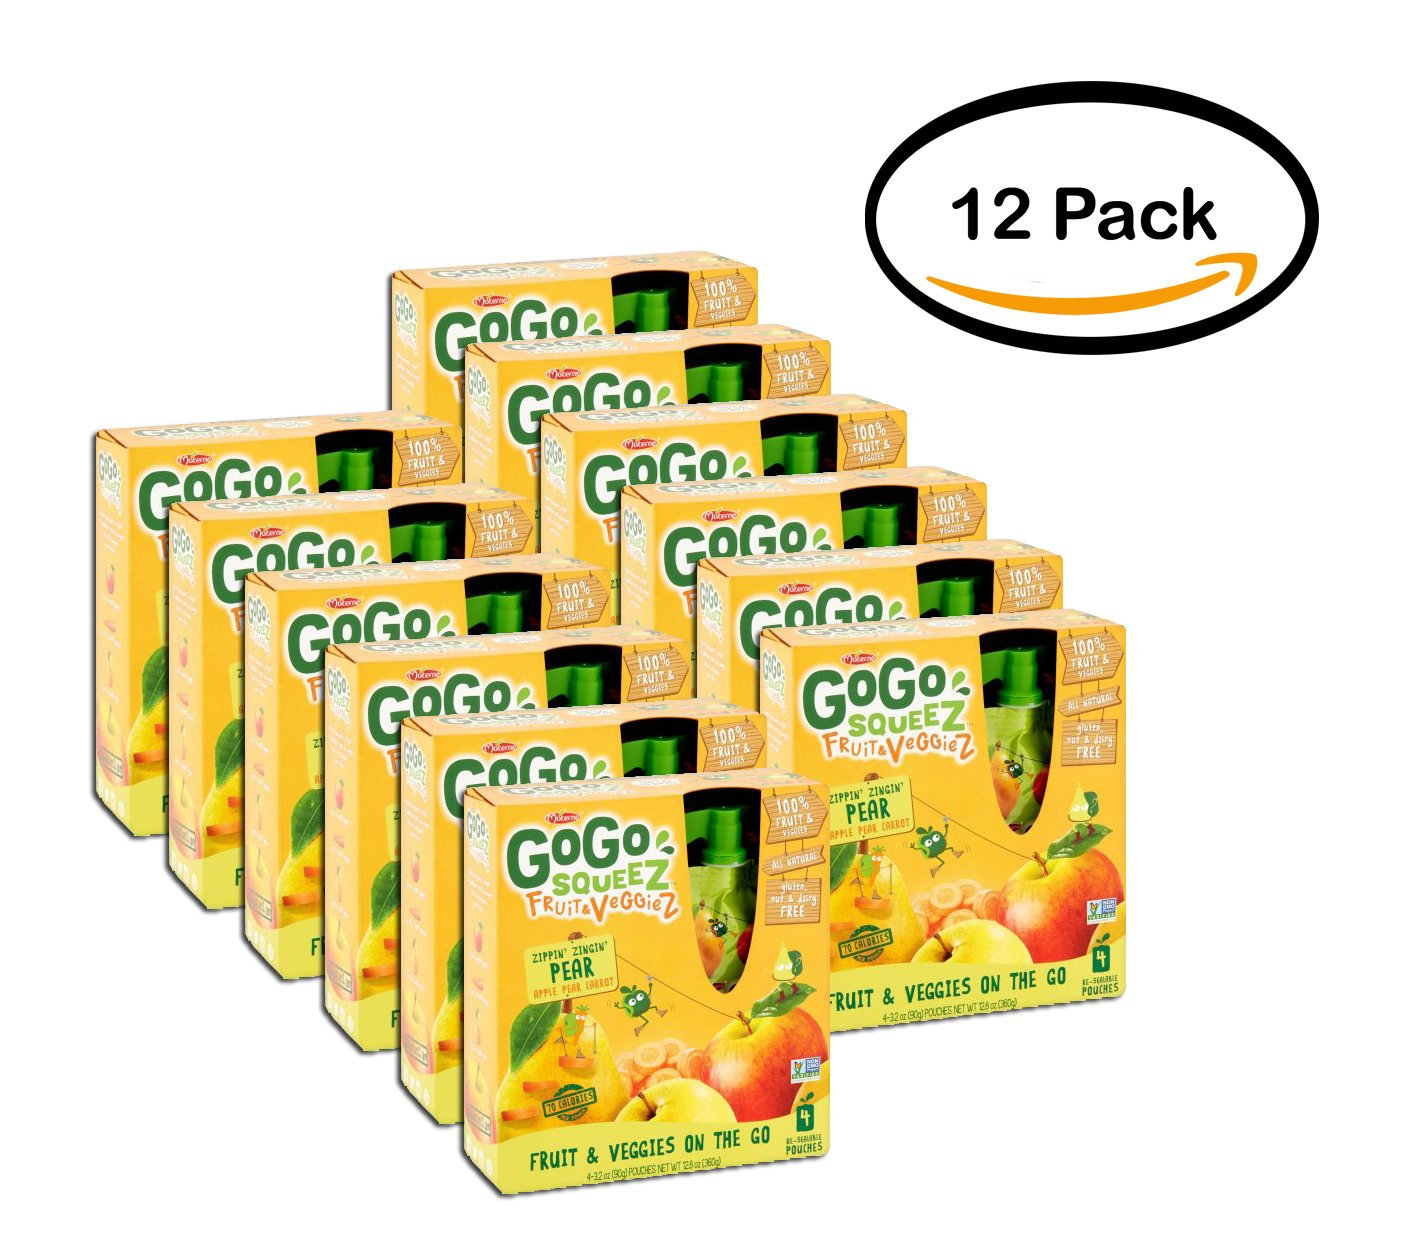 PACK OF 12 - GoGo Squeez Fruit & Veggiez On The Go Apple Pear Carrot - 4 CT